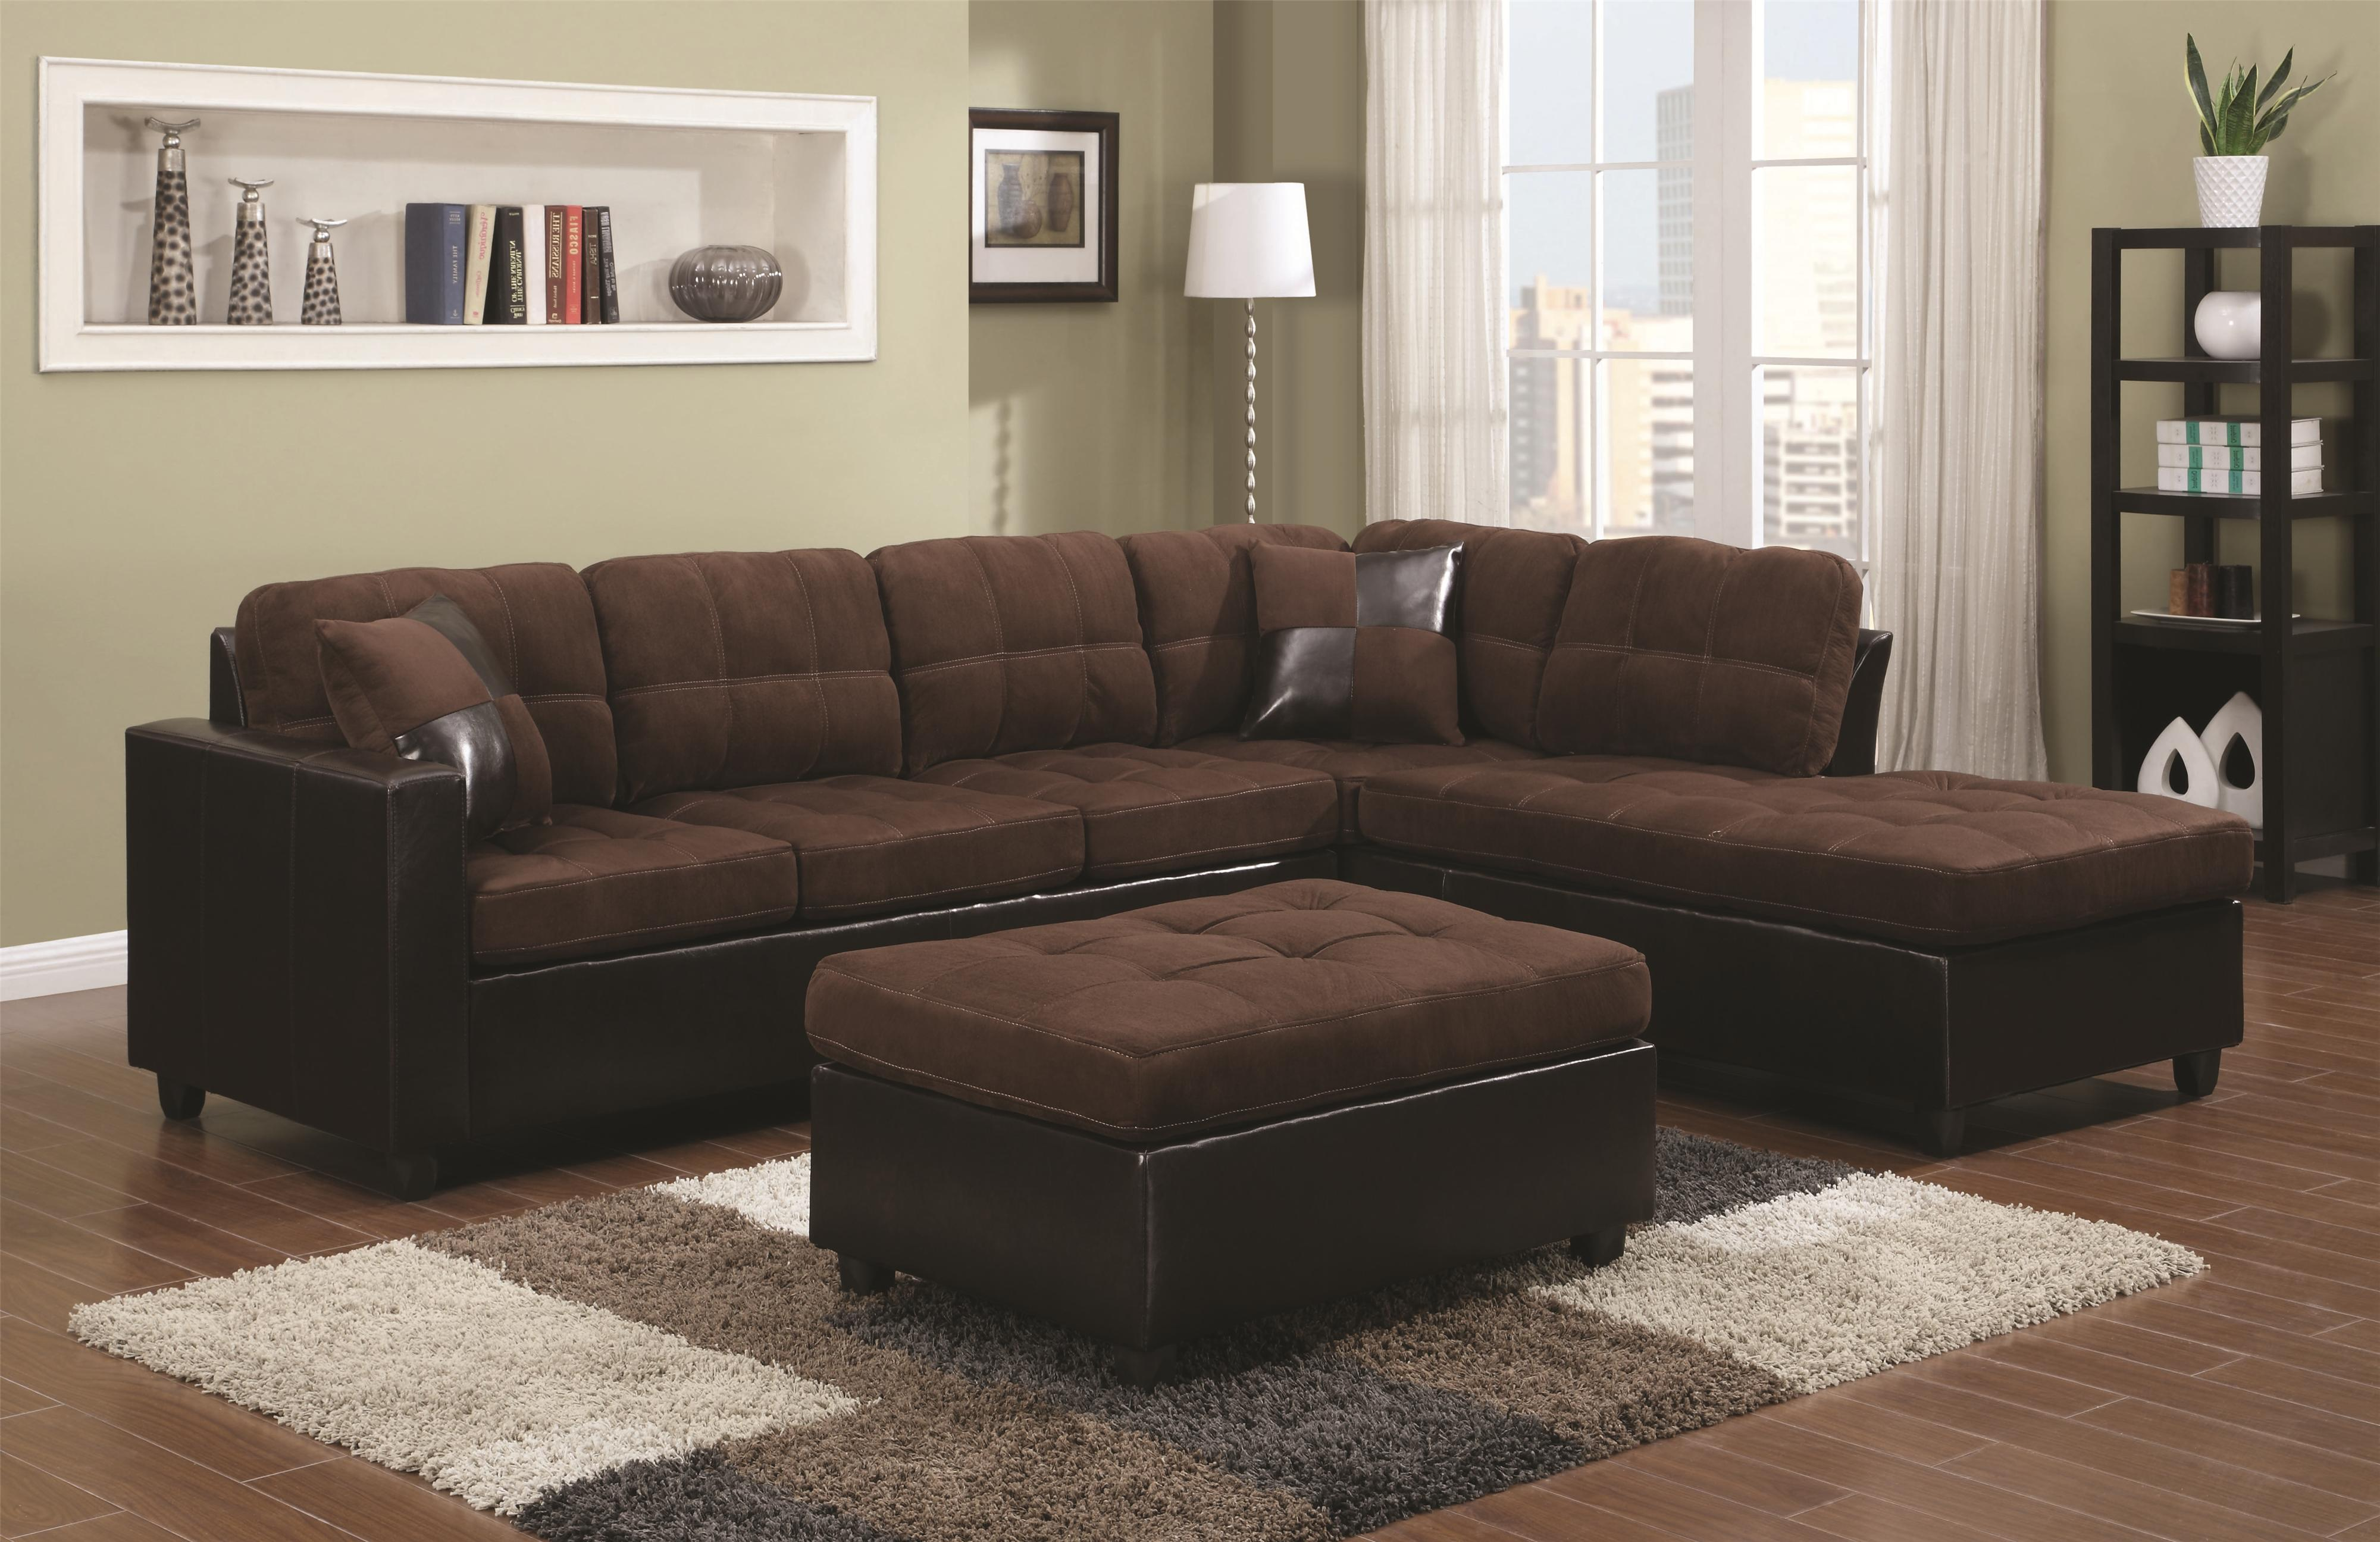 Mallory  Stationary Living Room Group by Coaster at Standard Furniture